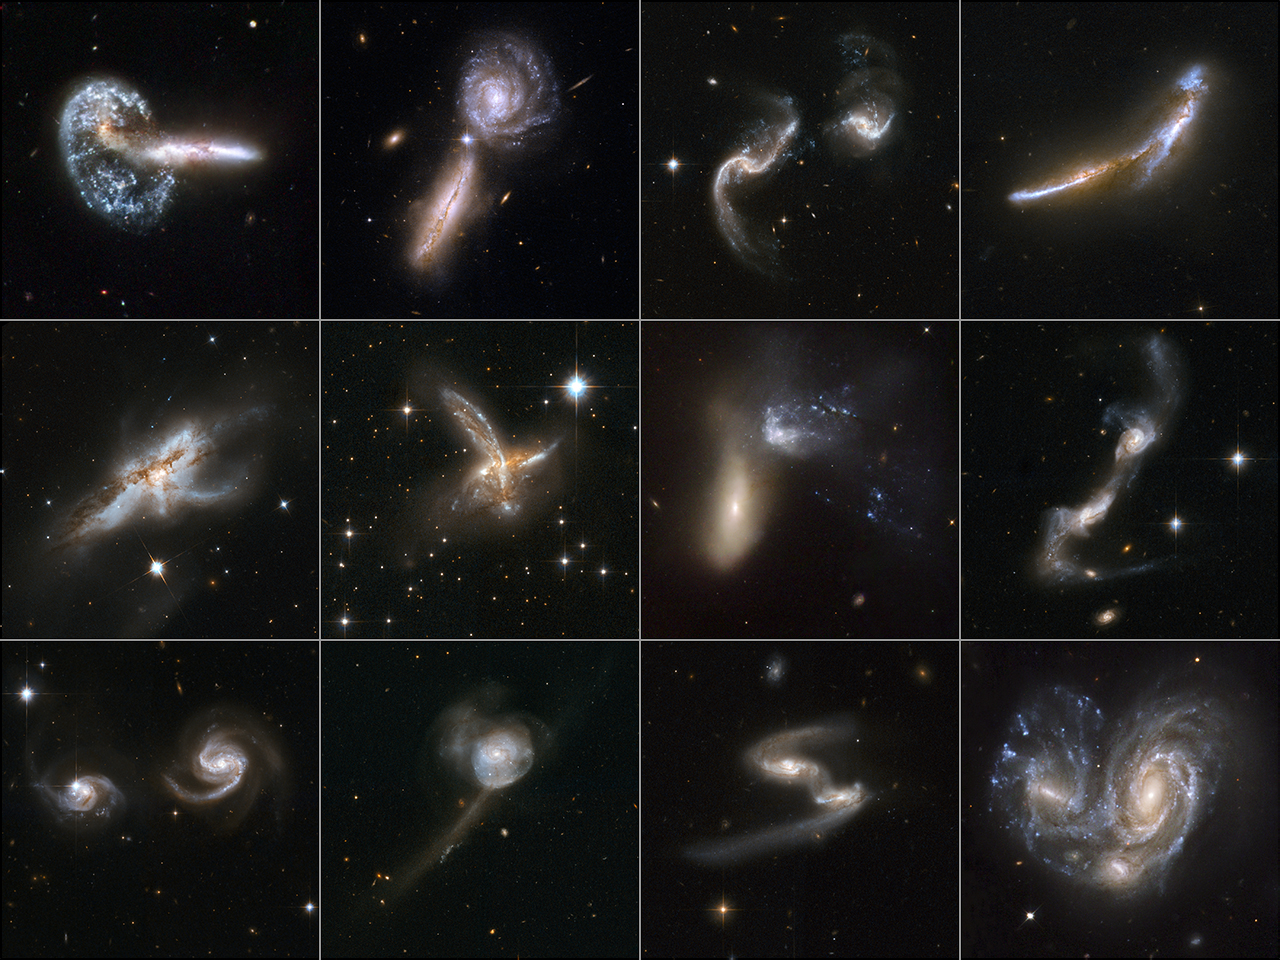 How the Hubble Space Telescope Changed Our View of the Cosmos